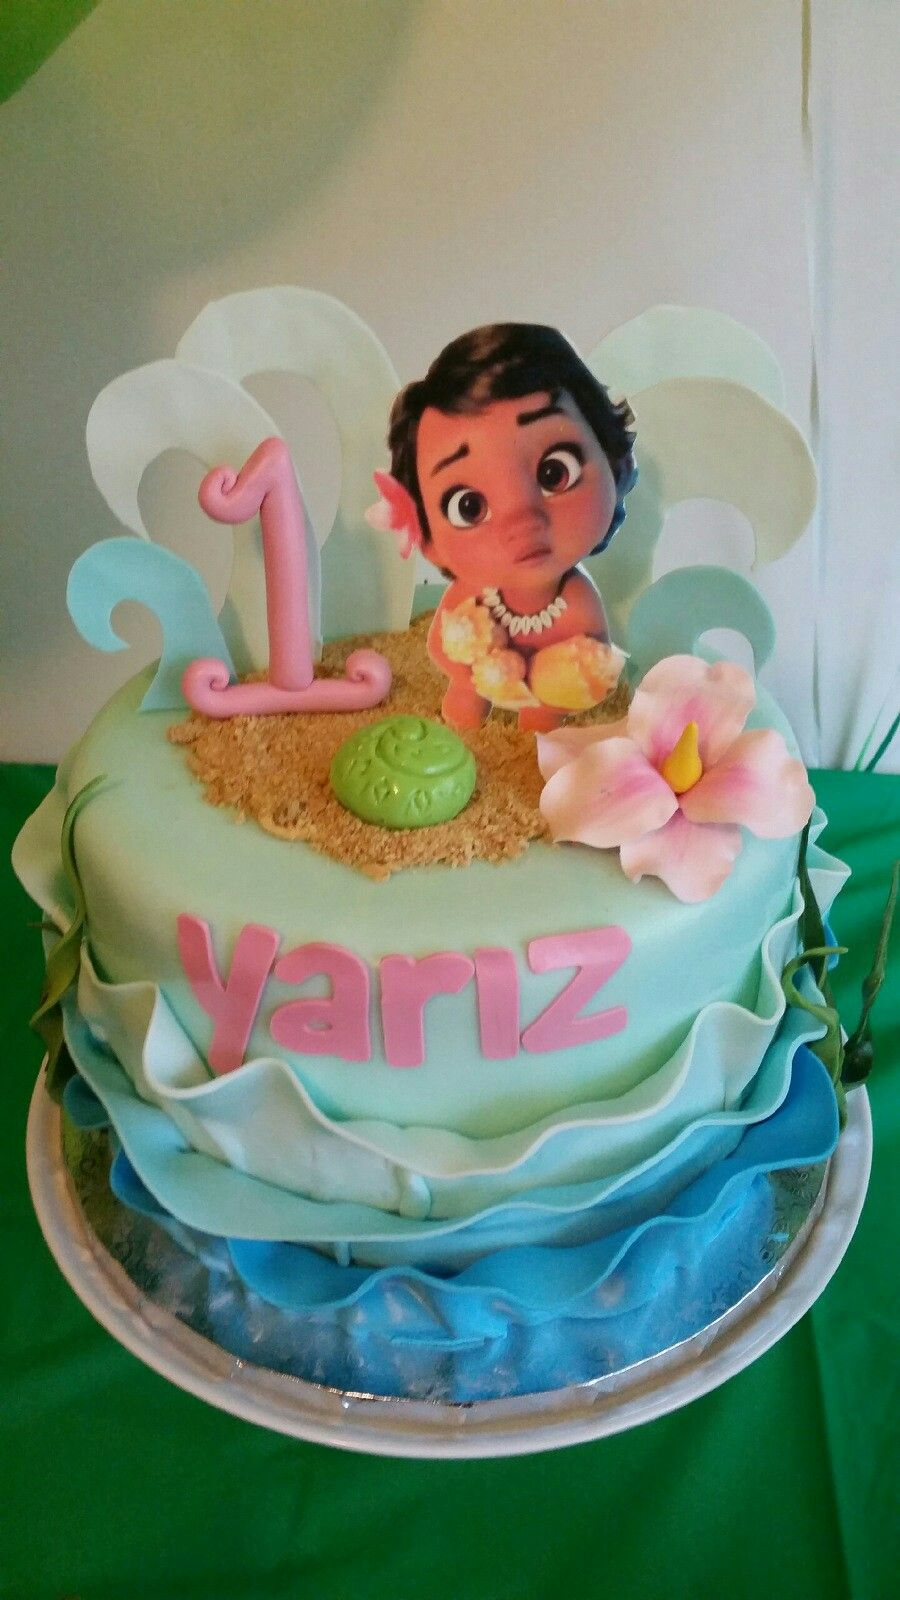 Moana Birthday Cake My Babies 1 Year Old Celebration 2017